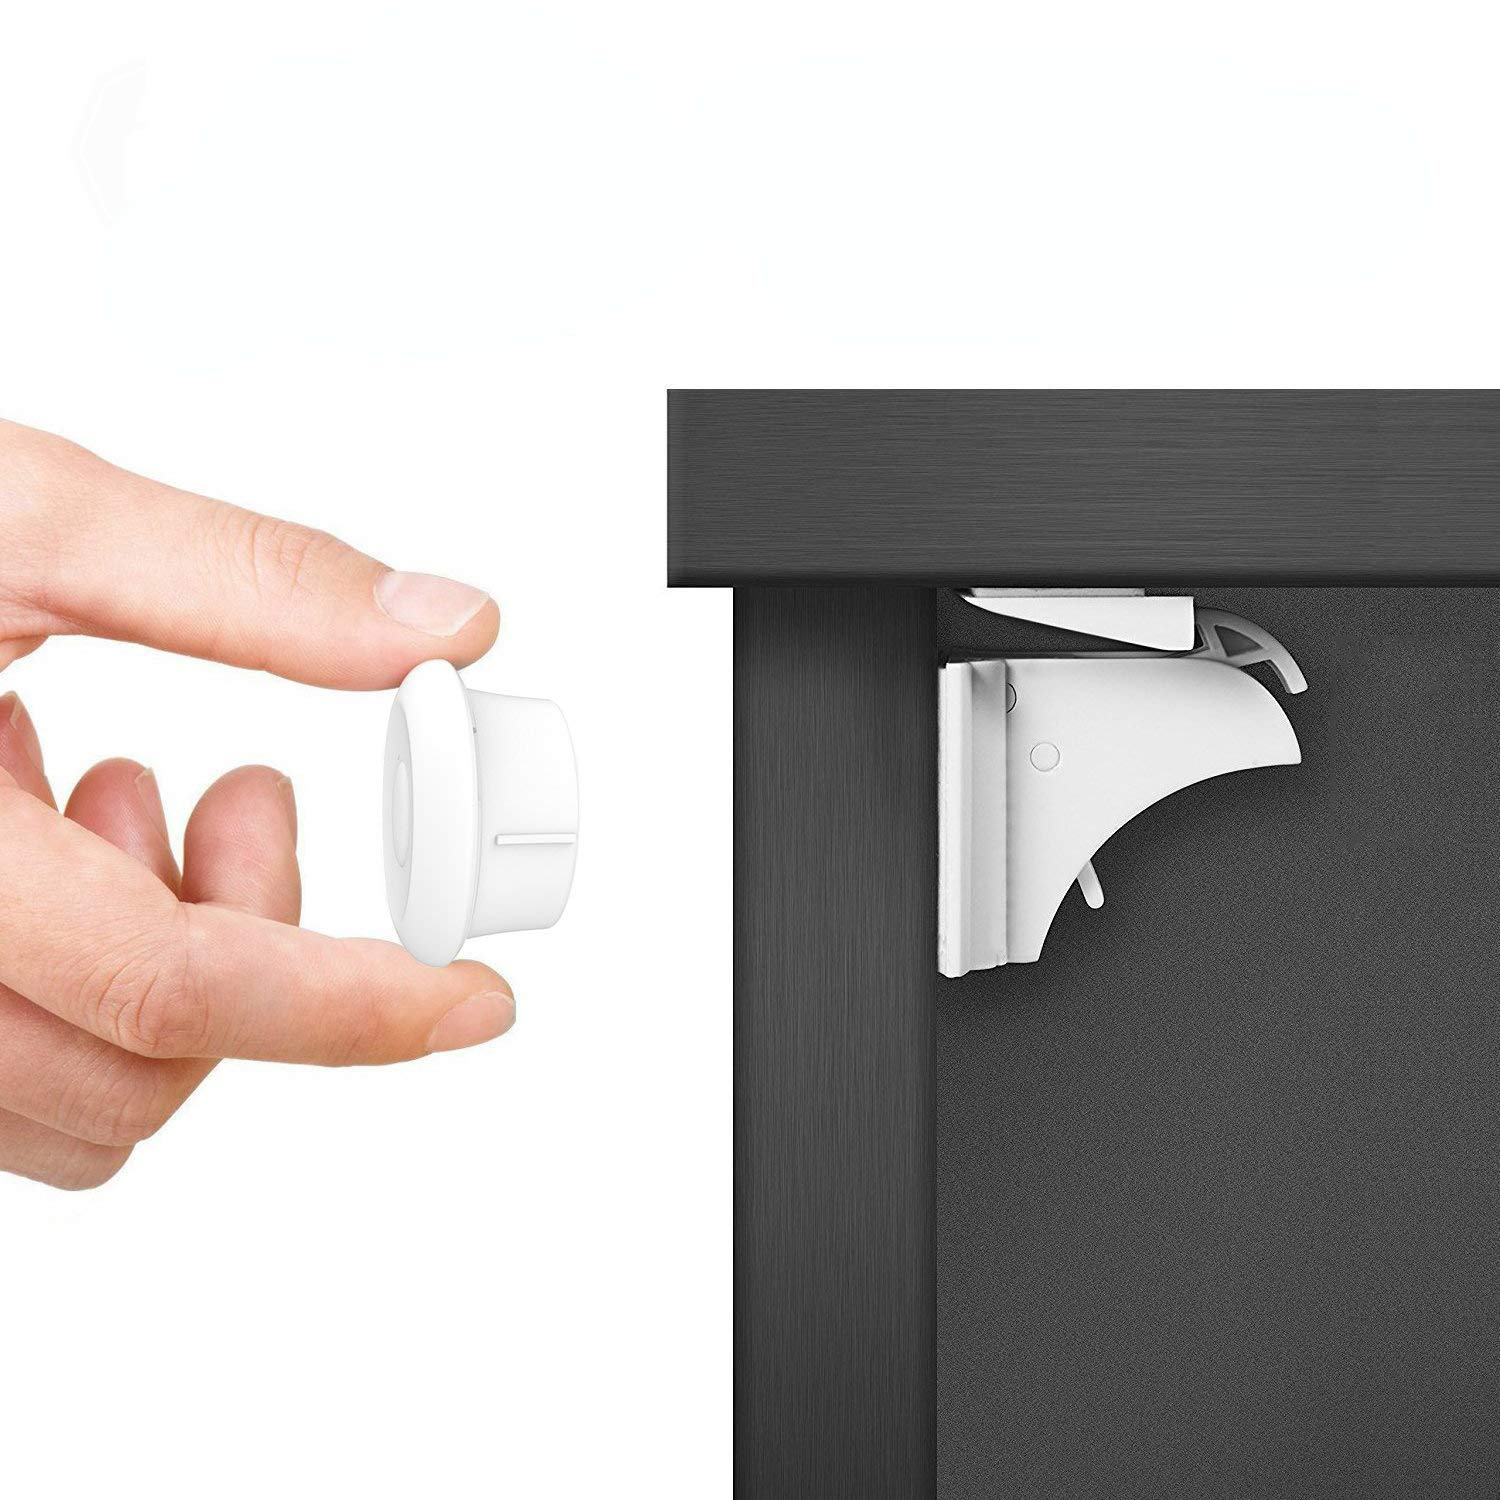 Baby Proofing Magnetic Cabinet Locks Child Safety - Norjews (3 Keys+20 Locks), Childproof Cupboard Baby Latches - Adhesive Magnet Drawers Locks No Tool or Drill